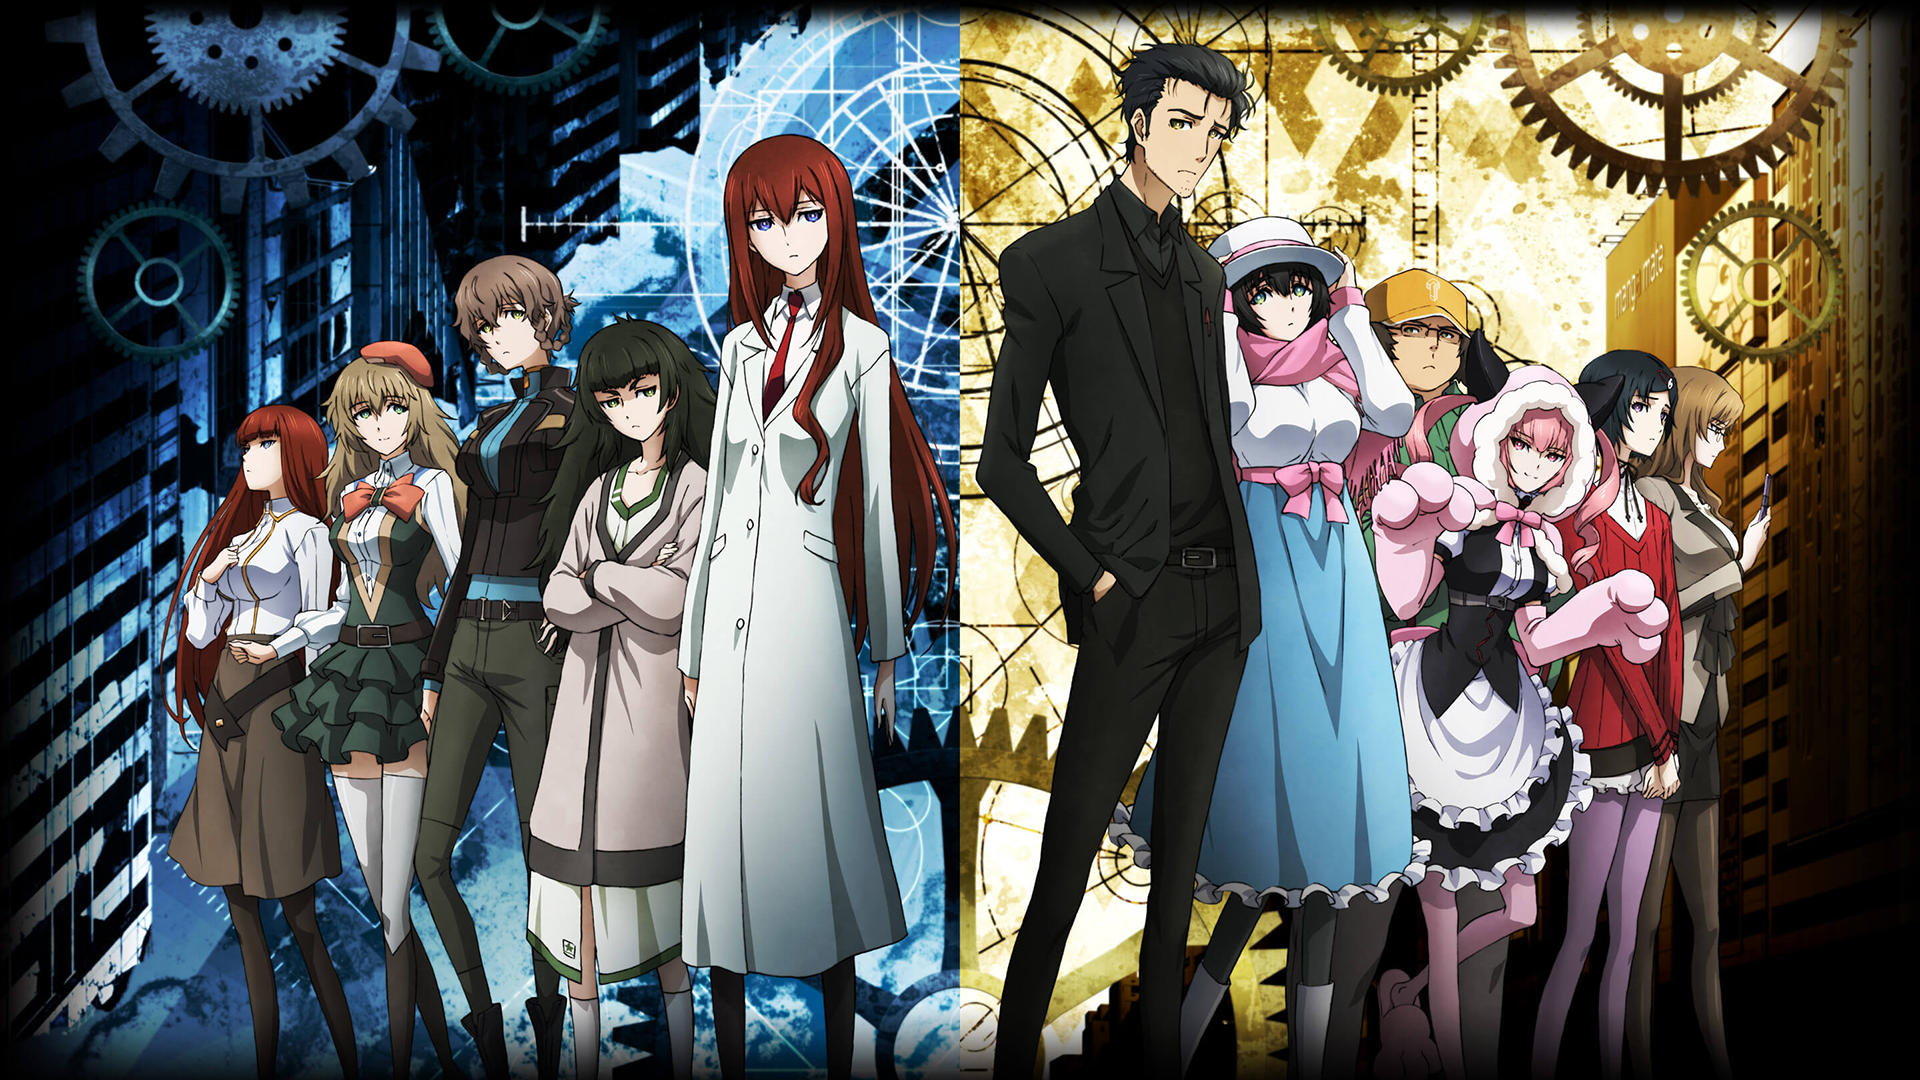 Steins Gate – The Plausibility of Time Travel